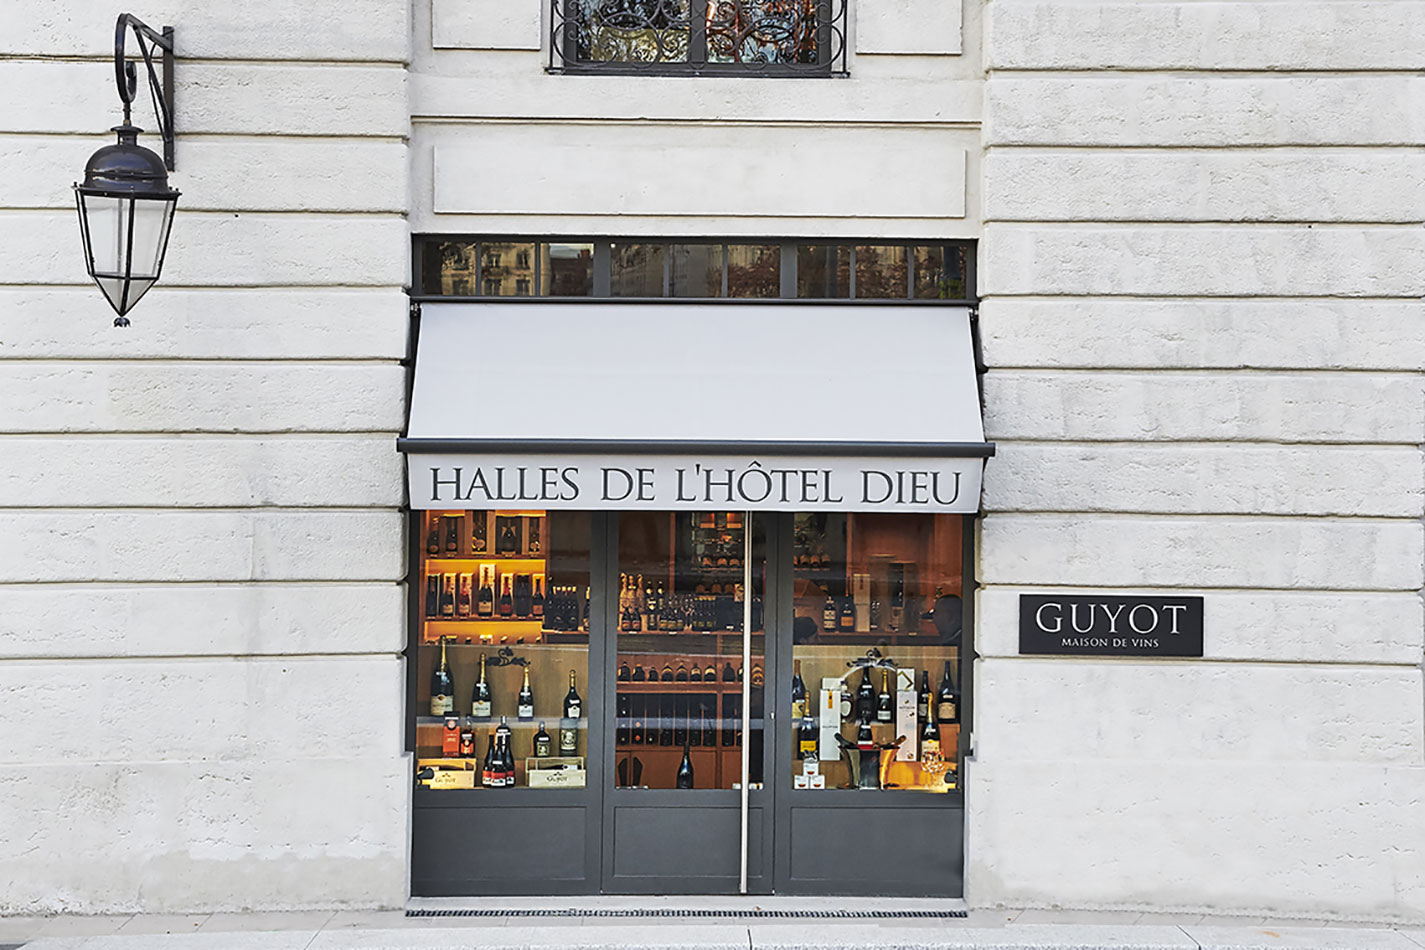 pages-guyot-vins-caves-lyon-hotel-dieu.jpg